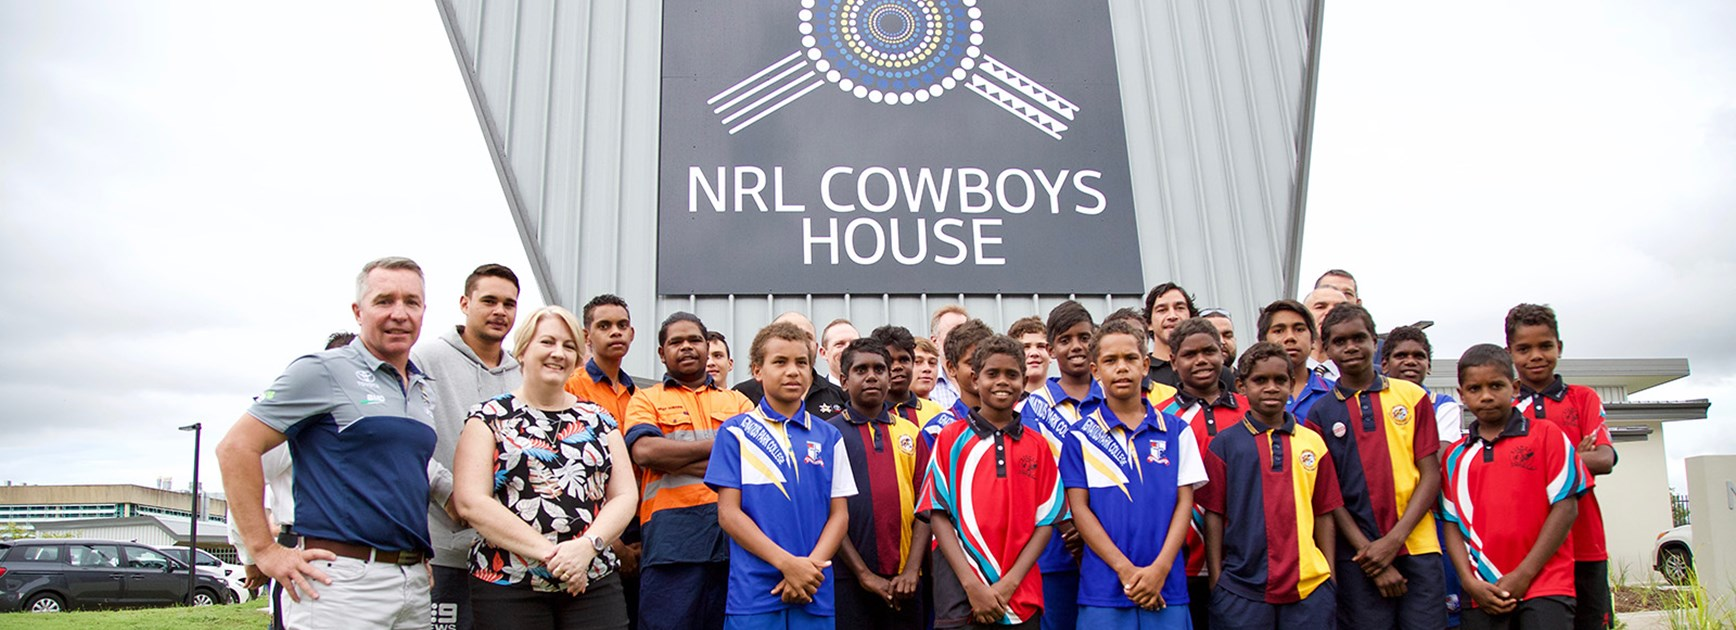 NRL Cowboys House will give students from remote communities an opportunity to fulfil their potential.